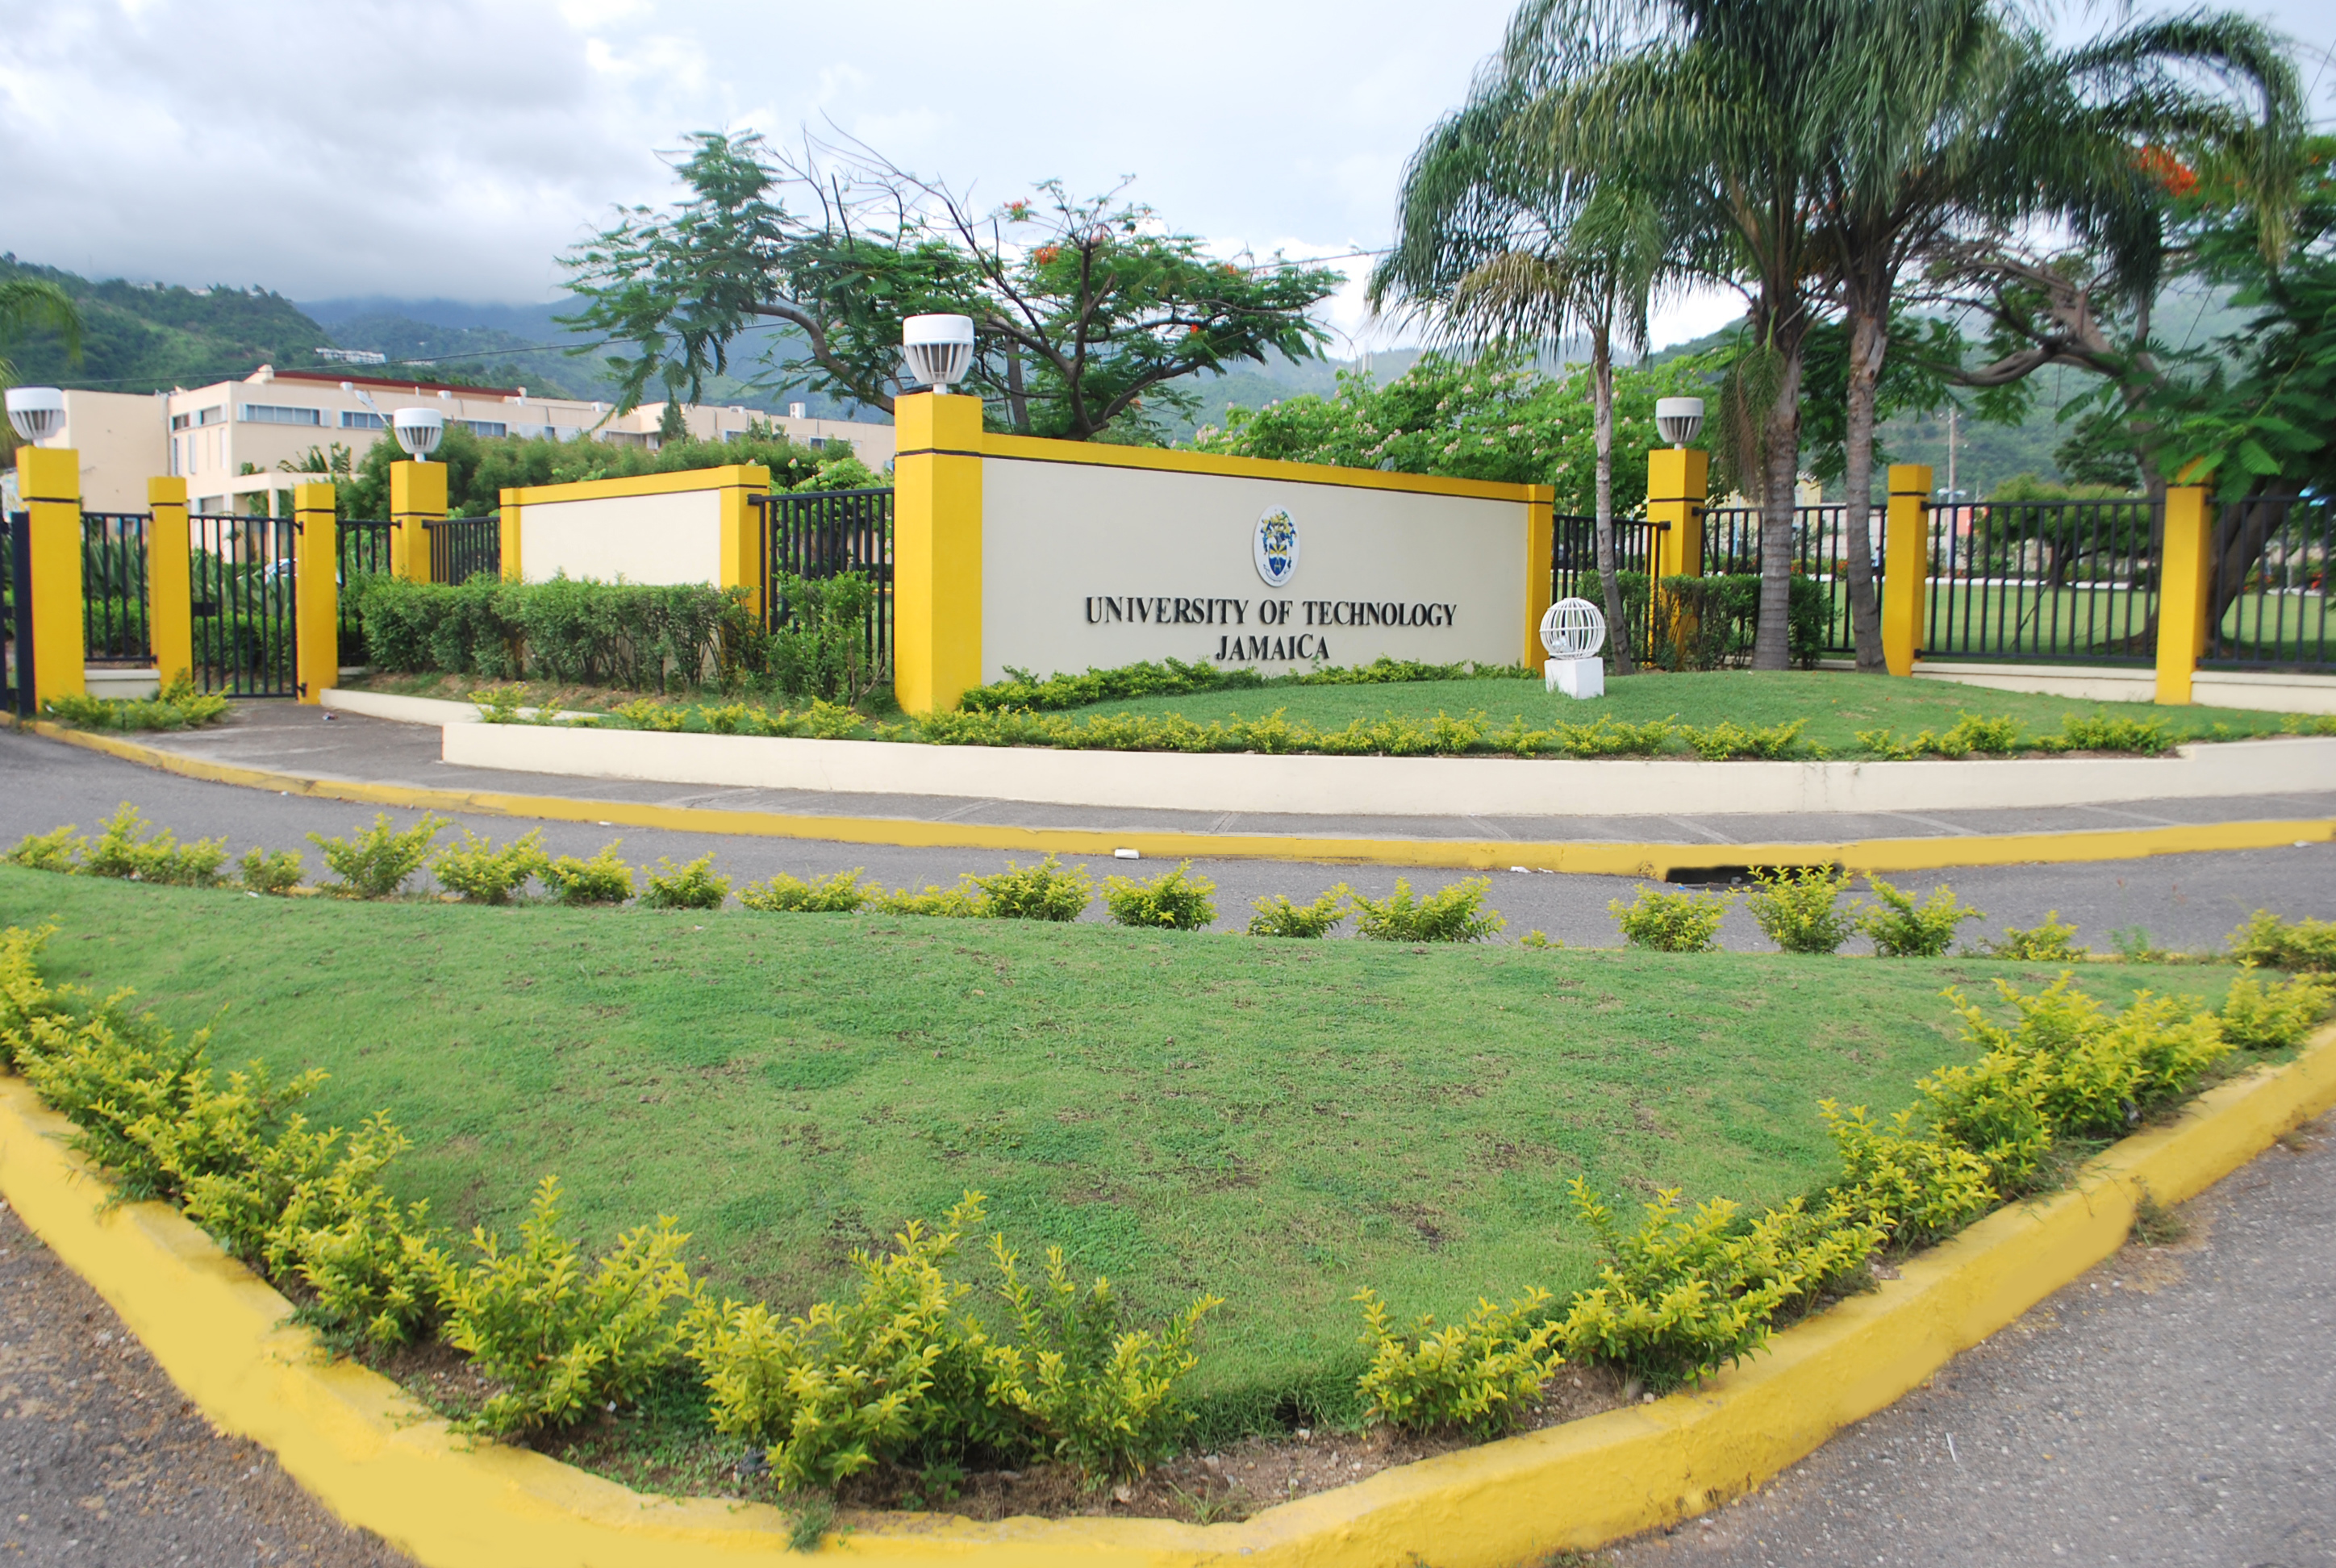 Updates on Operational Plans for Semester 1, Academic Year 2020/21